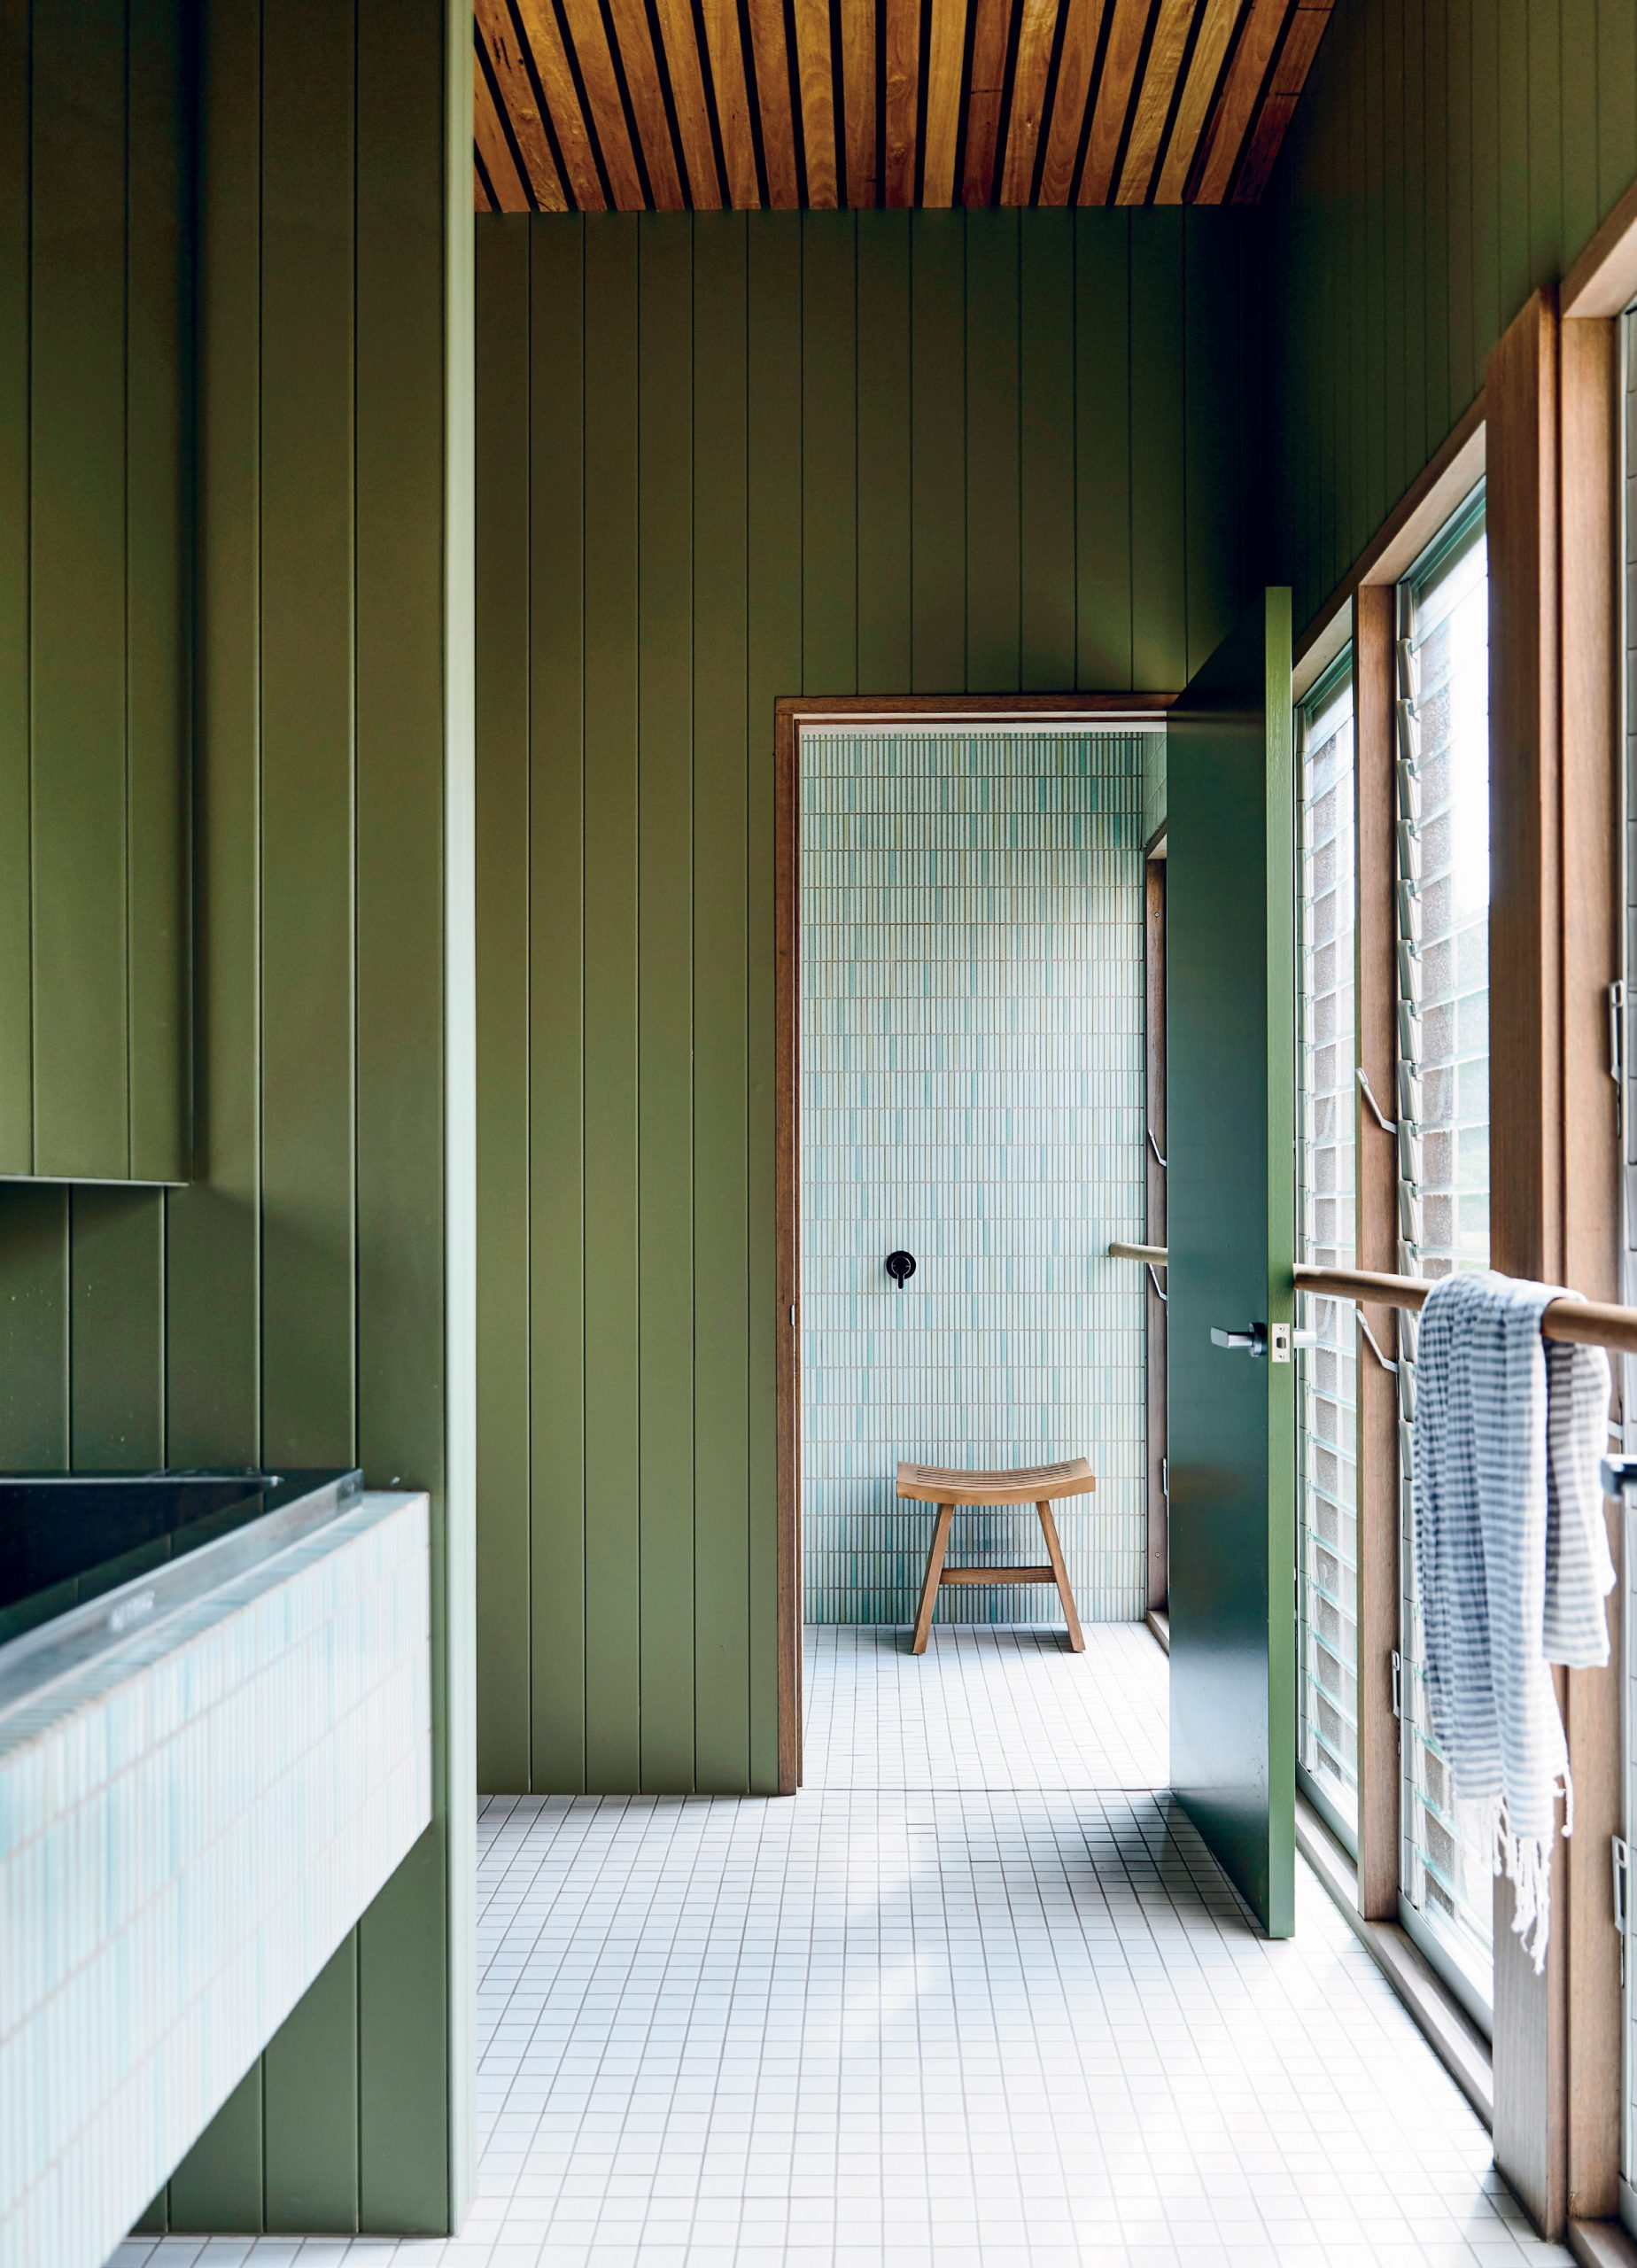 The communal bathroom was inspired by the multifunctionality of a caravan park shower, but executed in a refined way.